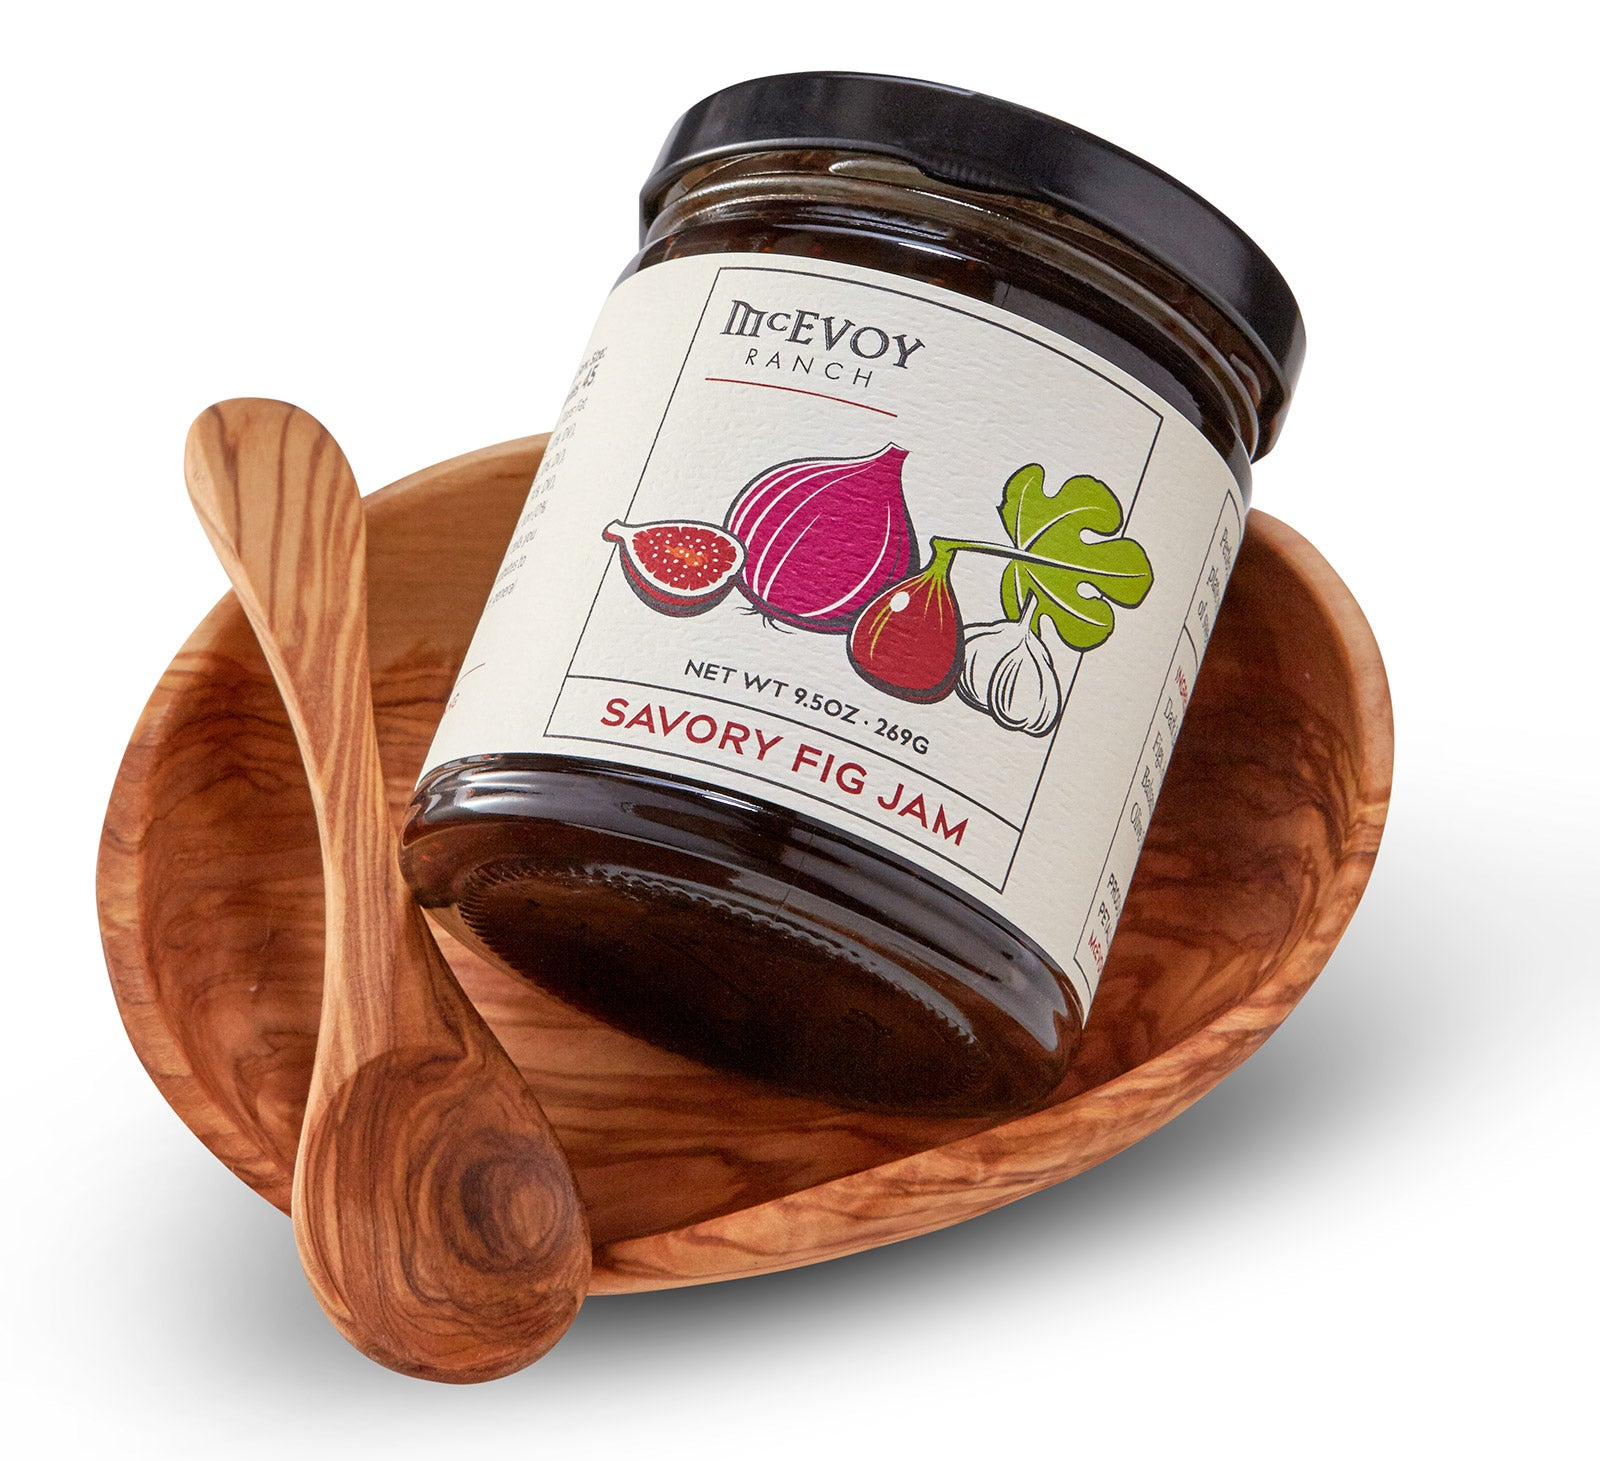 jar of fig jam and teak dipping dish